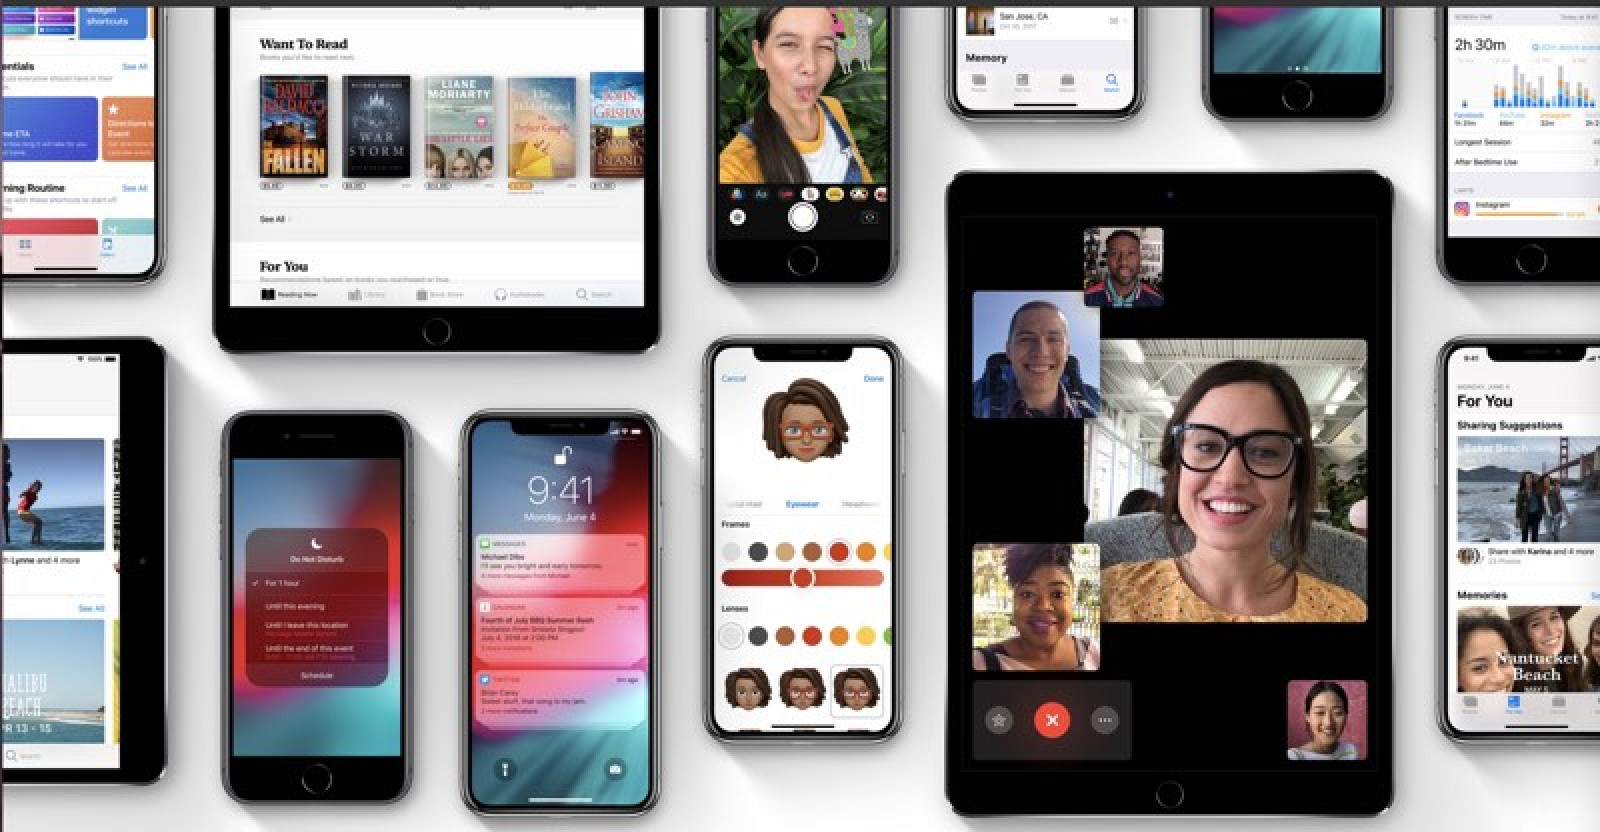 Apple Releasing iOS 12.4 Today With New Wireless Data Migration When Setting Up a New iPhone and Apple News+ Improvements